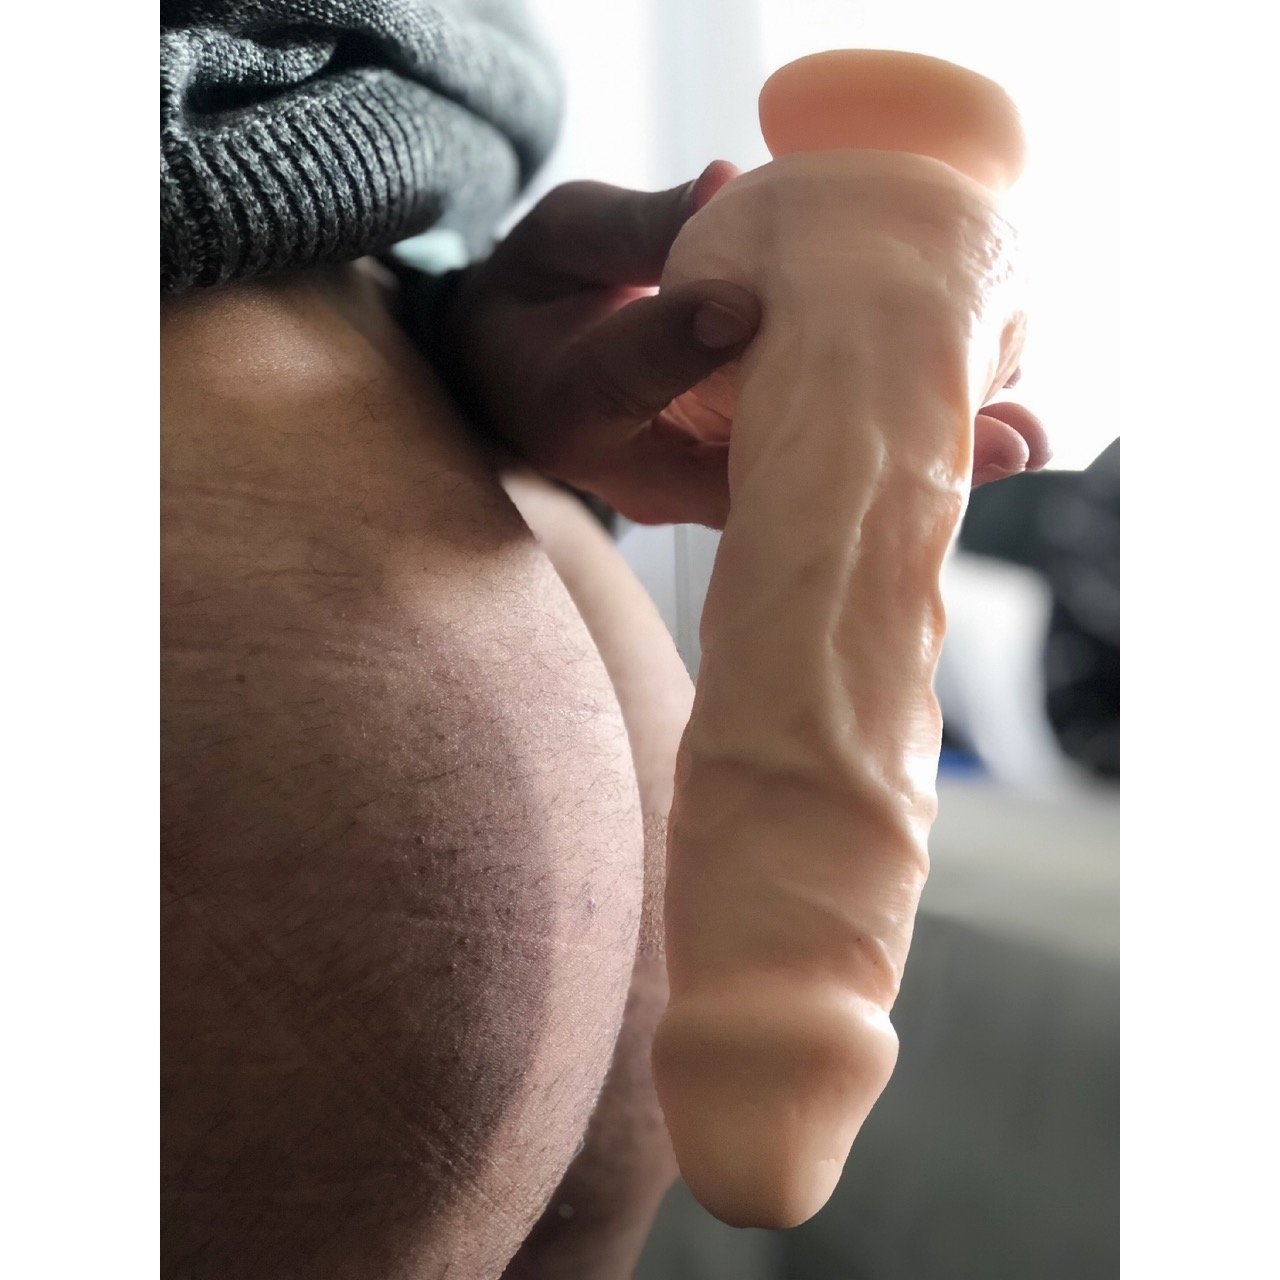 Average Joe - Andy the Mechanic Dildo - Gay Men's Sex Toys - Adam's Toy Box